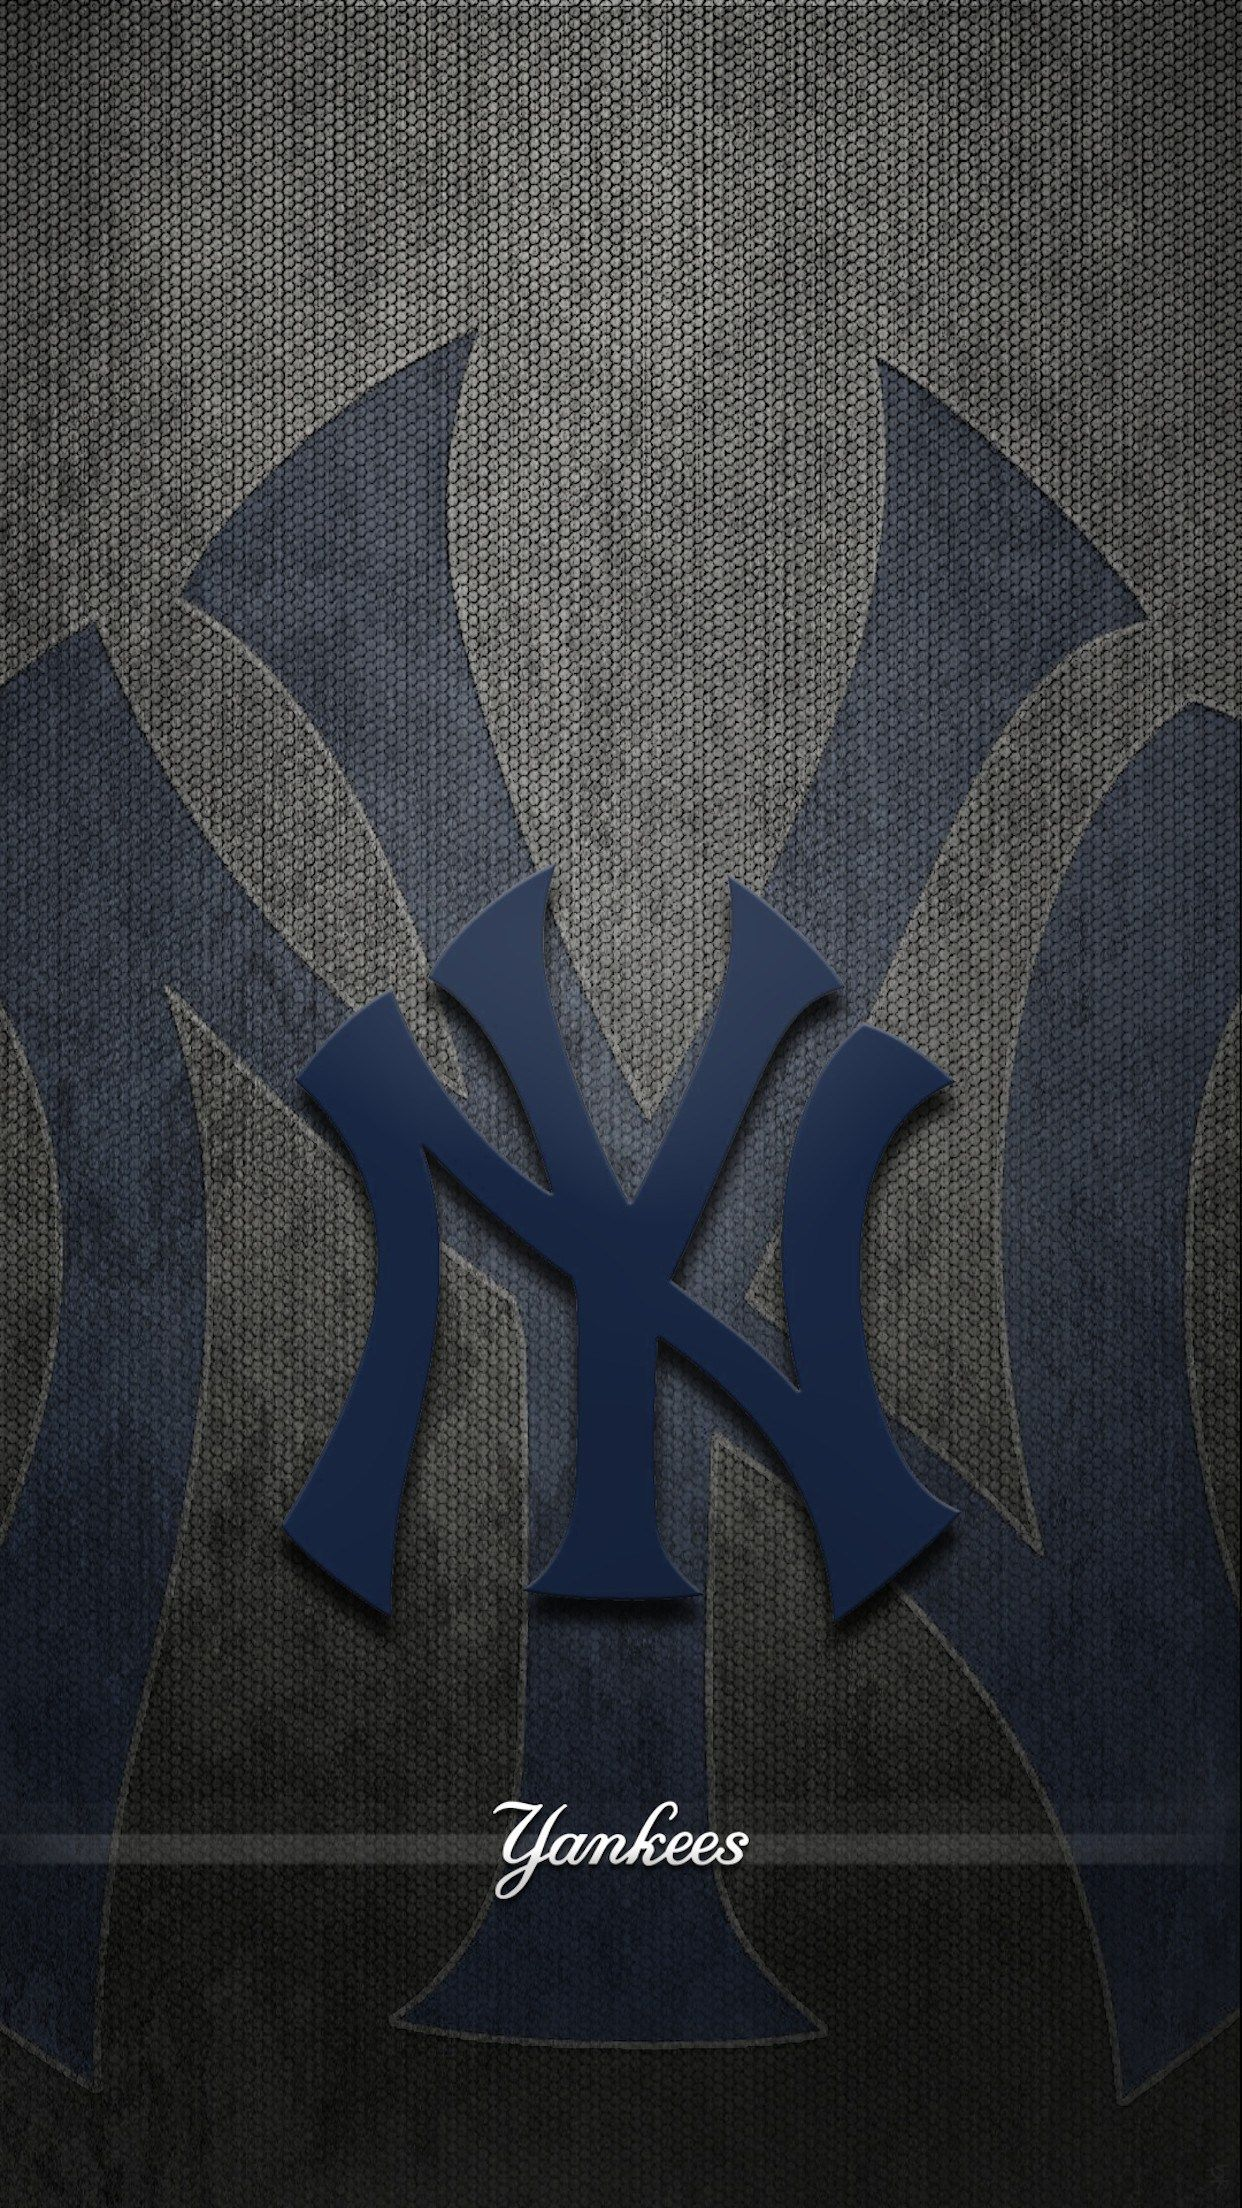 Beautiful New York Yankees Wallpaper Iphone Art Design